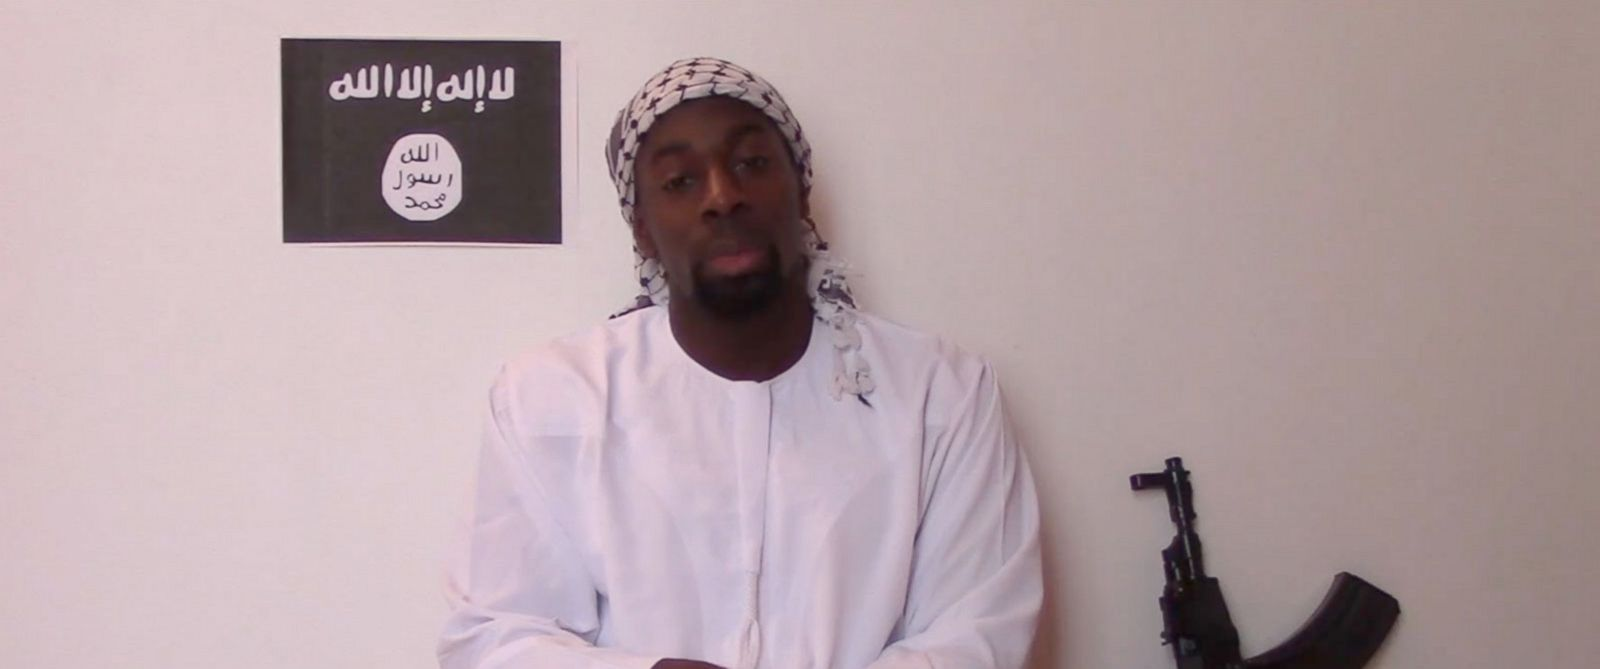 PHOTO: A man who appears to be Paris shooter Amedy Coulibaly is featured in a video online.